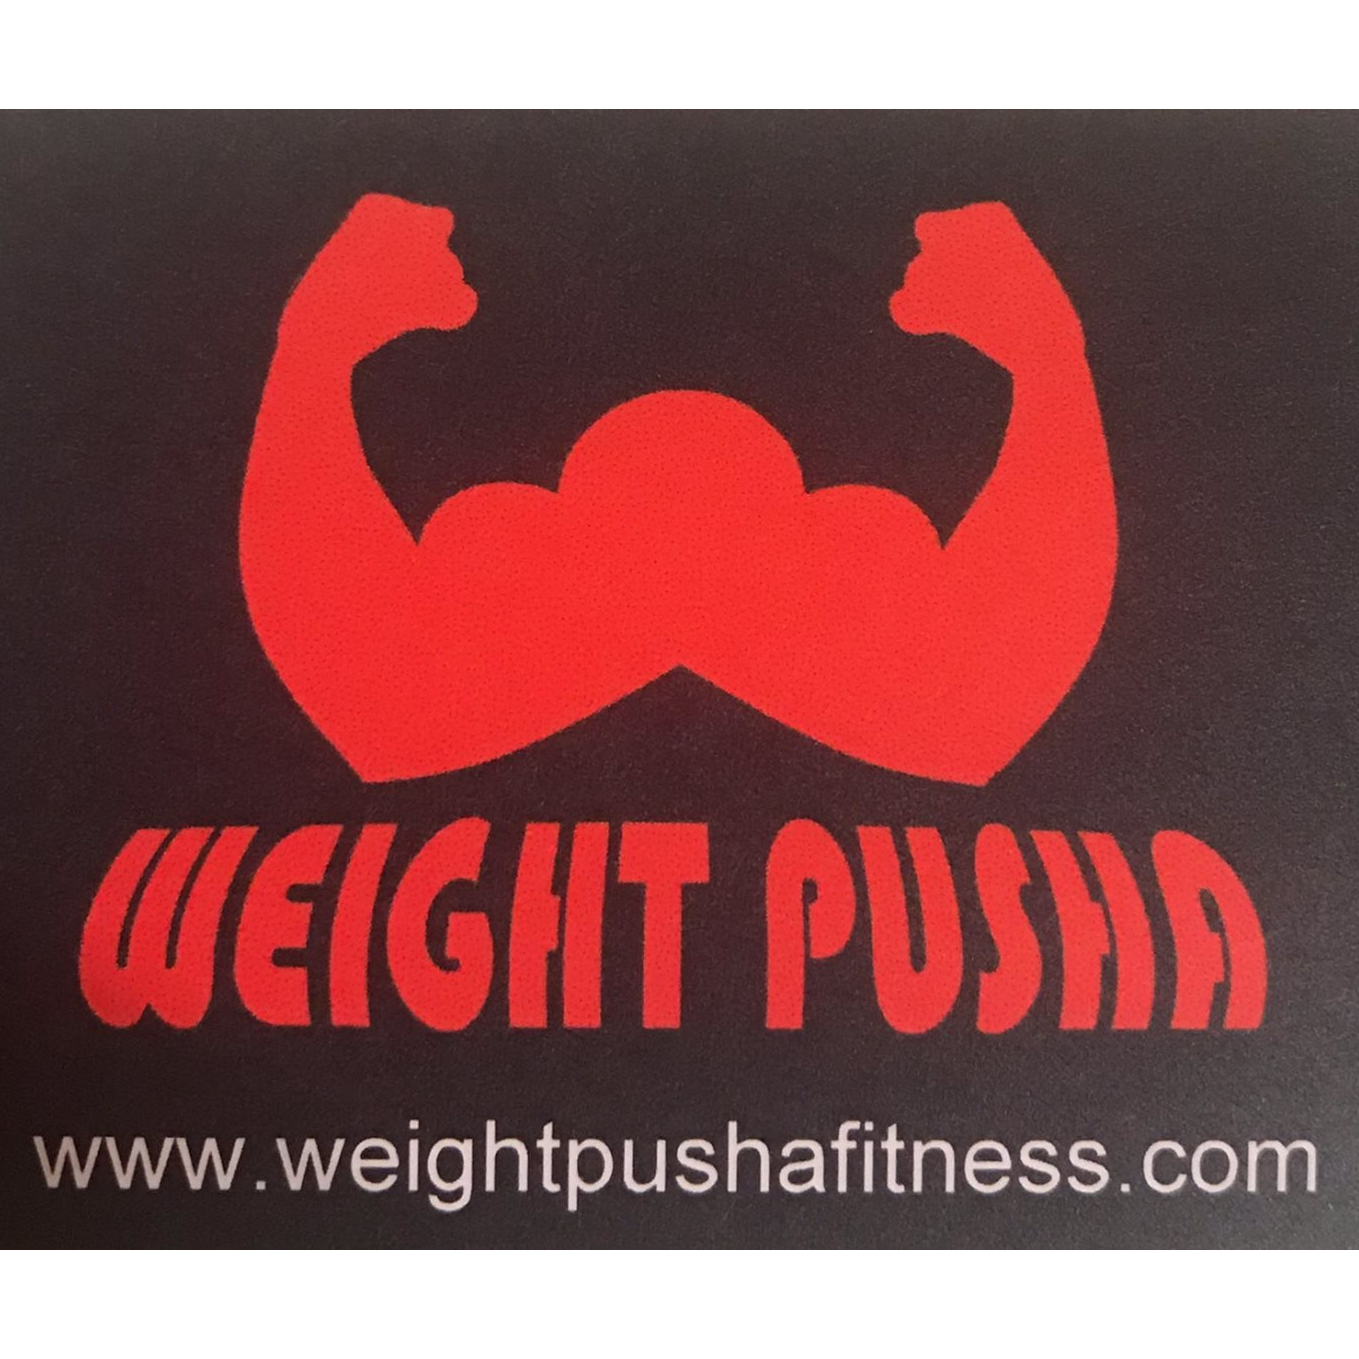 Weight Pusha Fitness